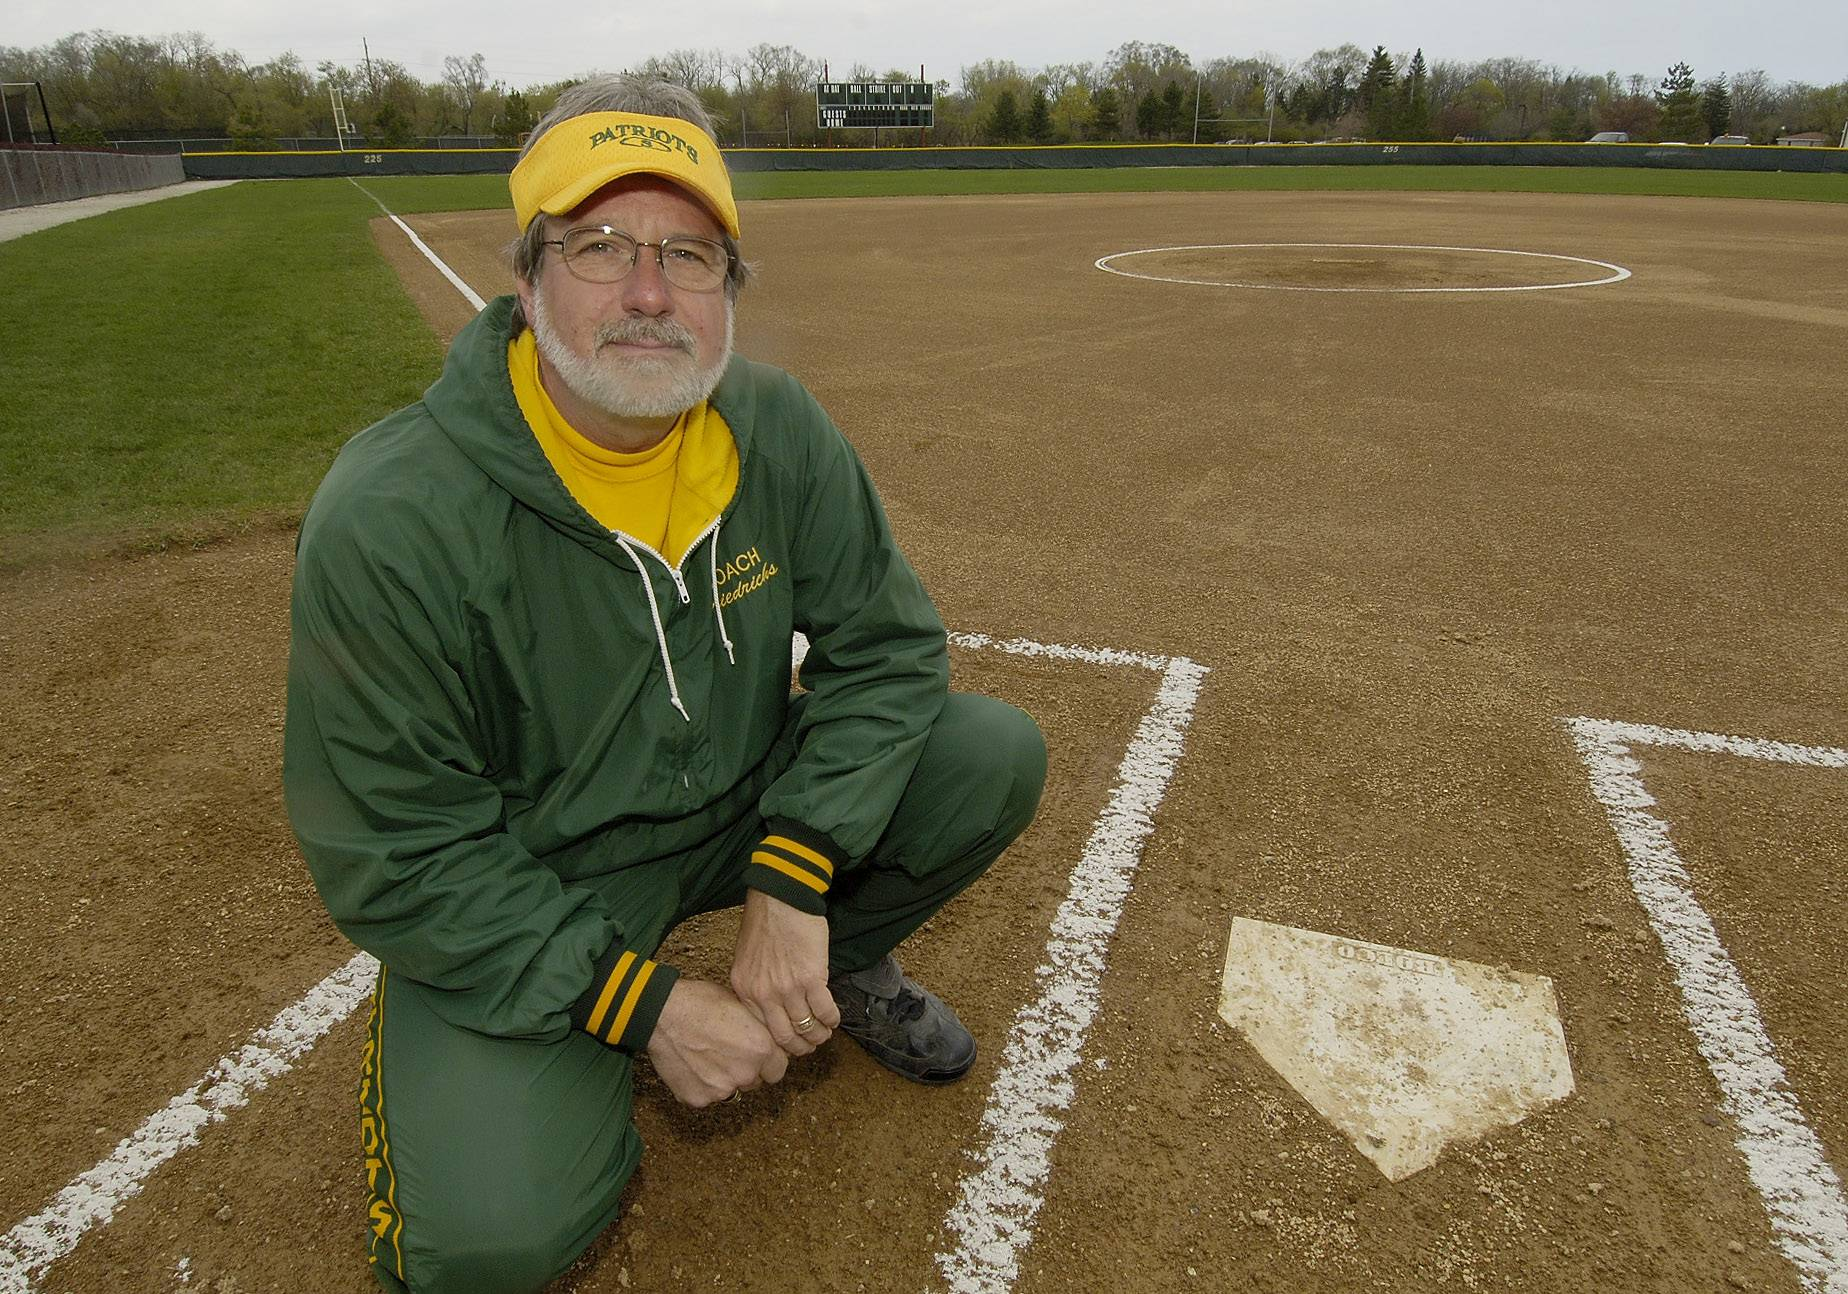 Larry Friedrichs is through as Stevenson's softball head coach after 27 seasons and 515 victories.